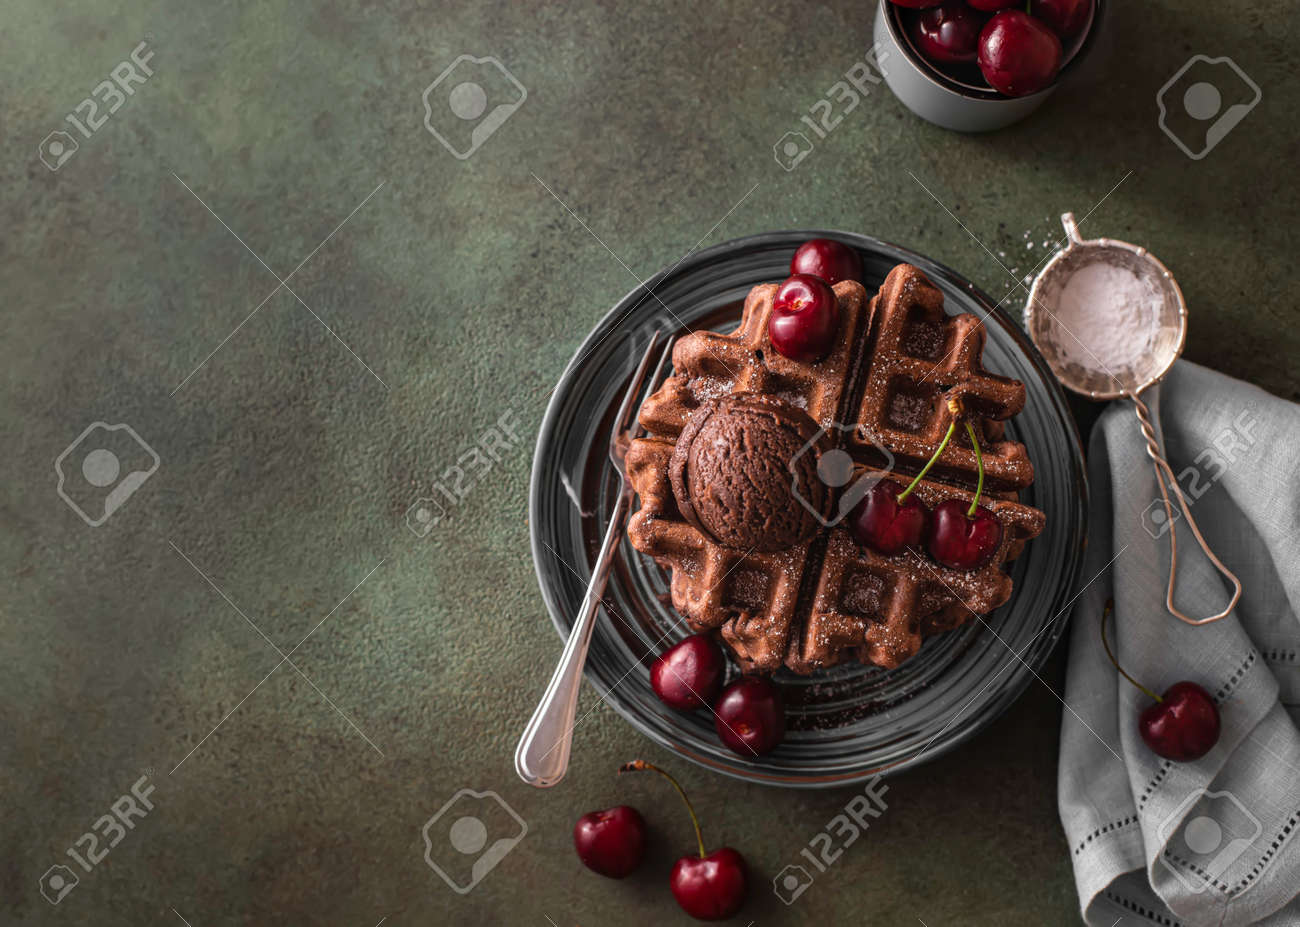 Homemade chocolate waffles with berries and chocolate ice cream. Delicious dessert or breakfast. Close-up - 171890474